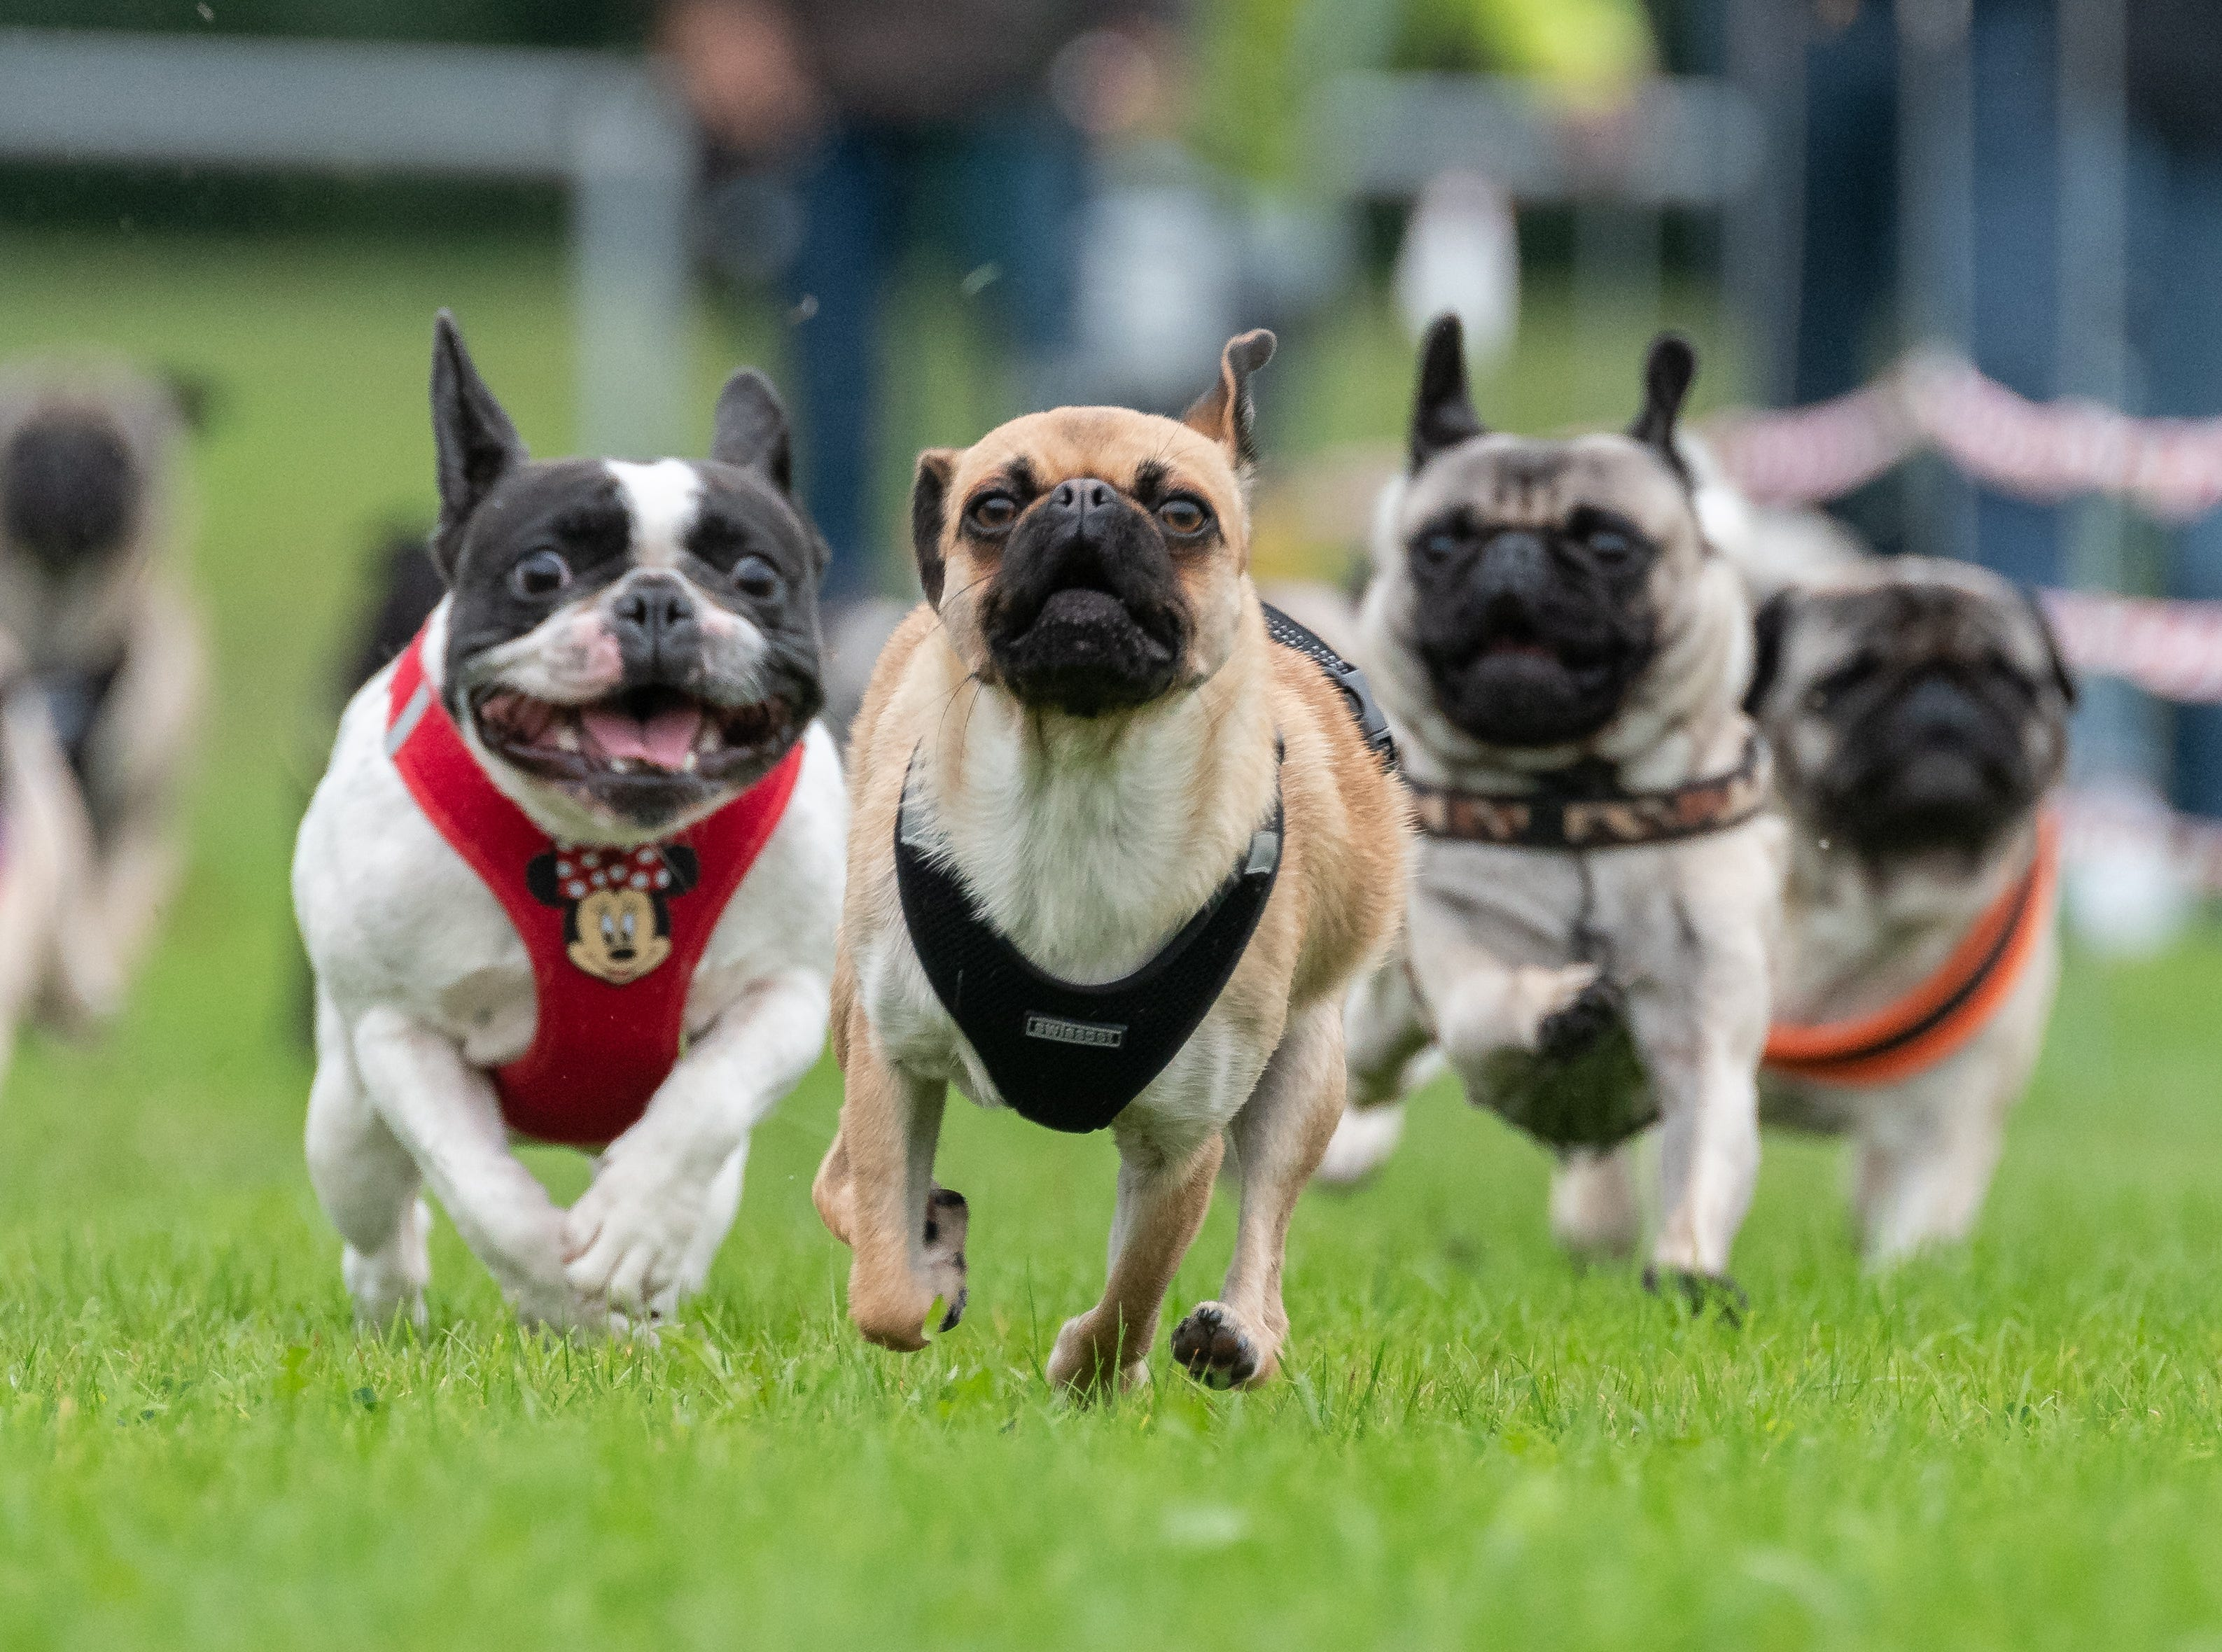 Pugs and French bulldogs run on a grass pitch during the 8th Southern German pug and bulldog race.